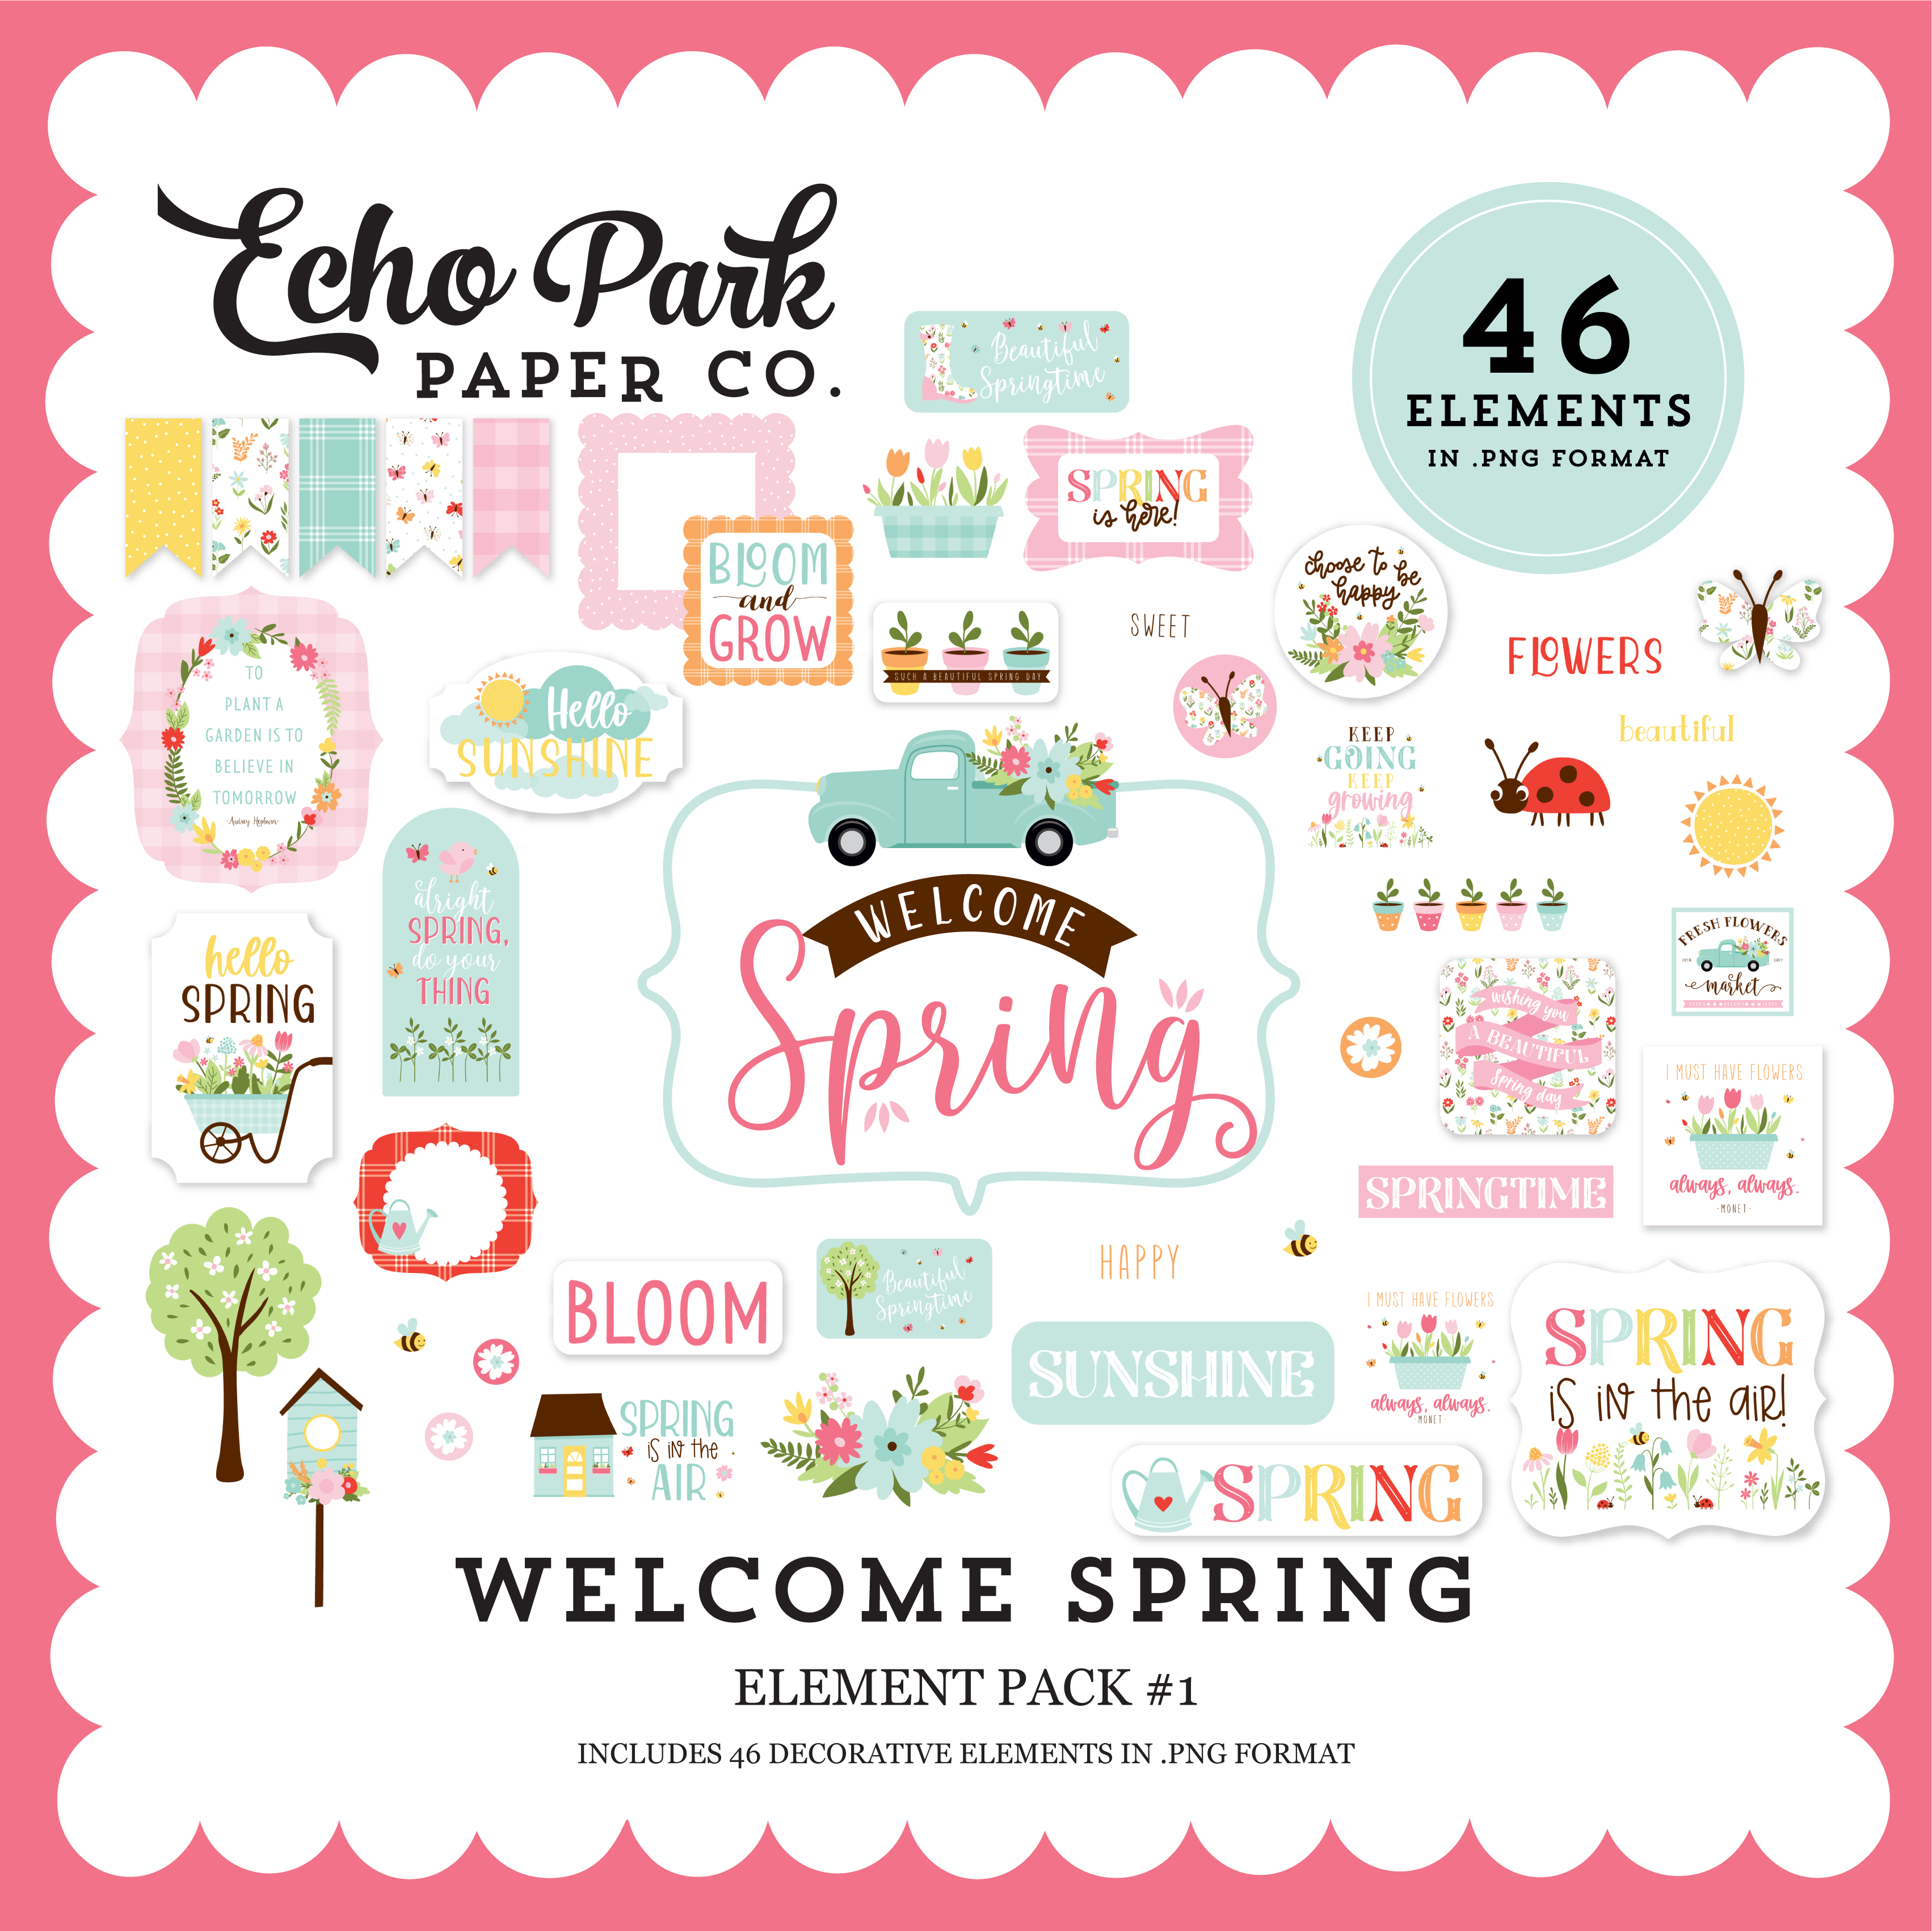 Welcome Spring Element Pack #1